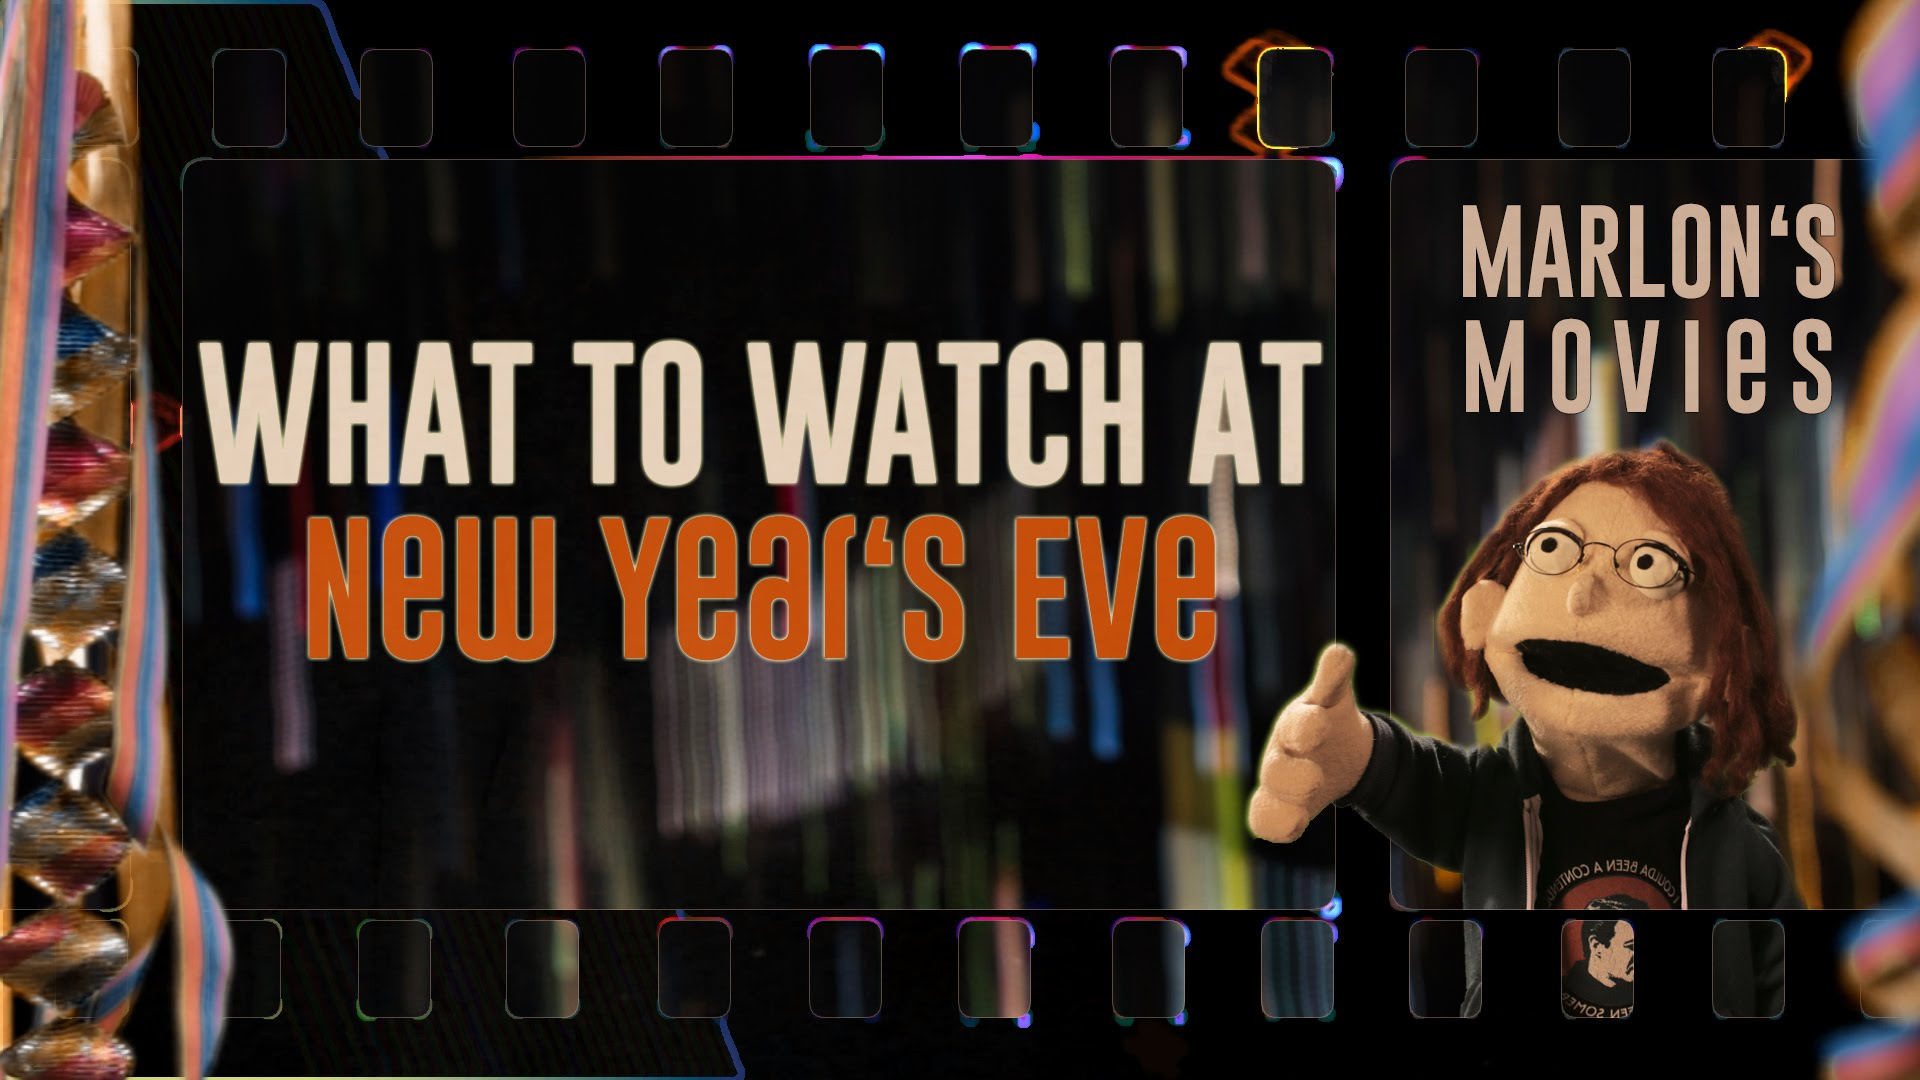 Marlon's Movies for New Year's Eve